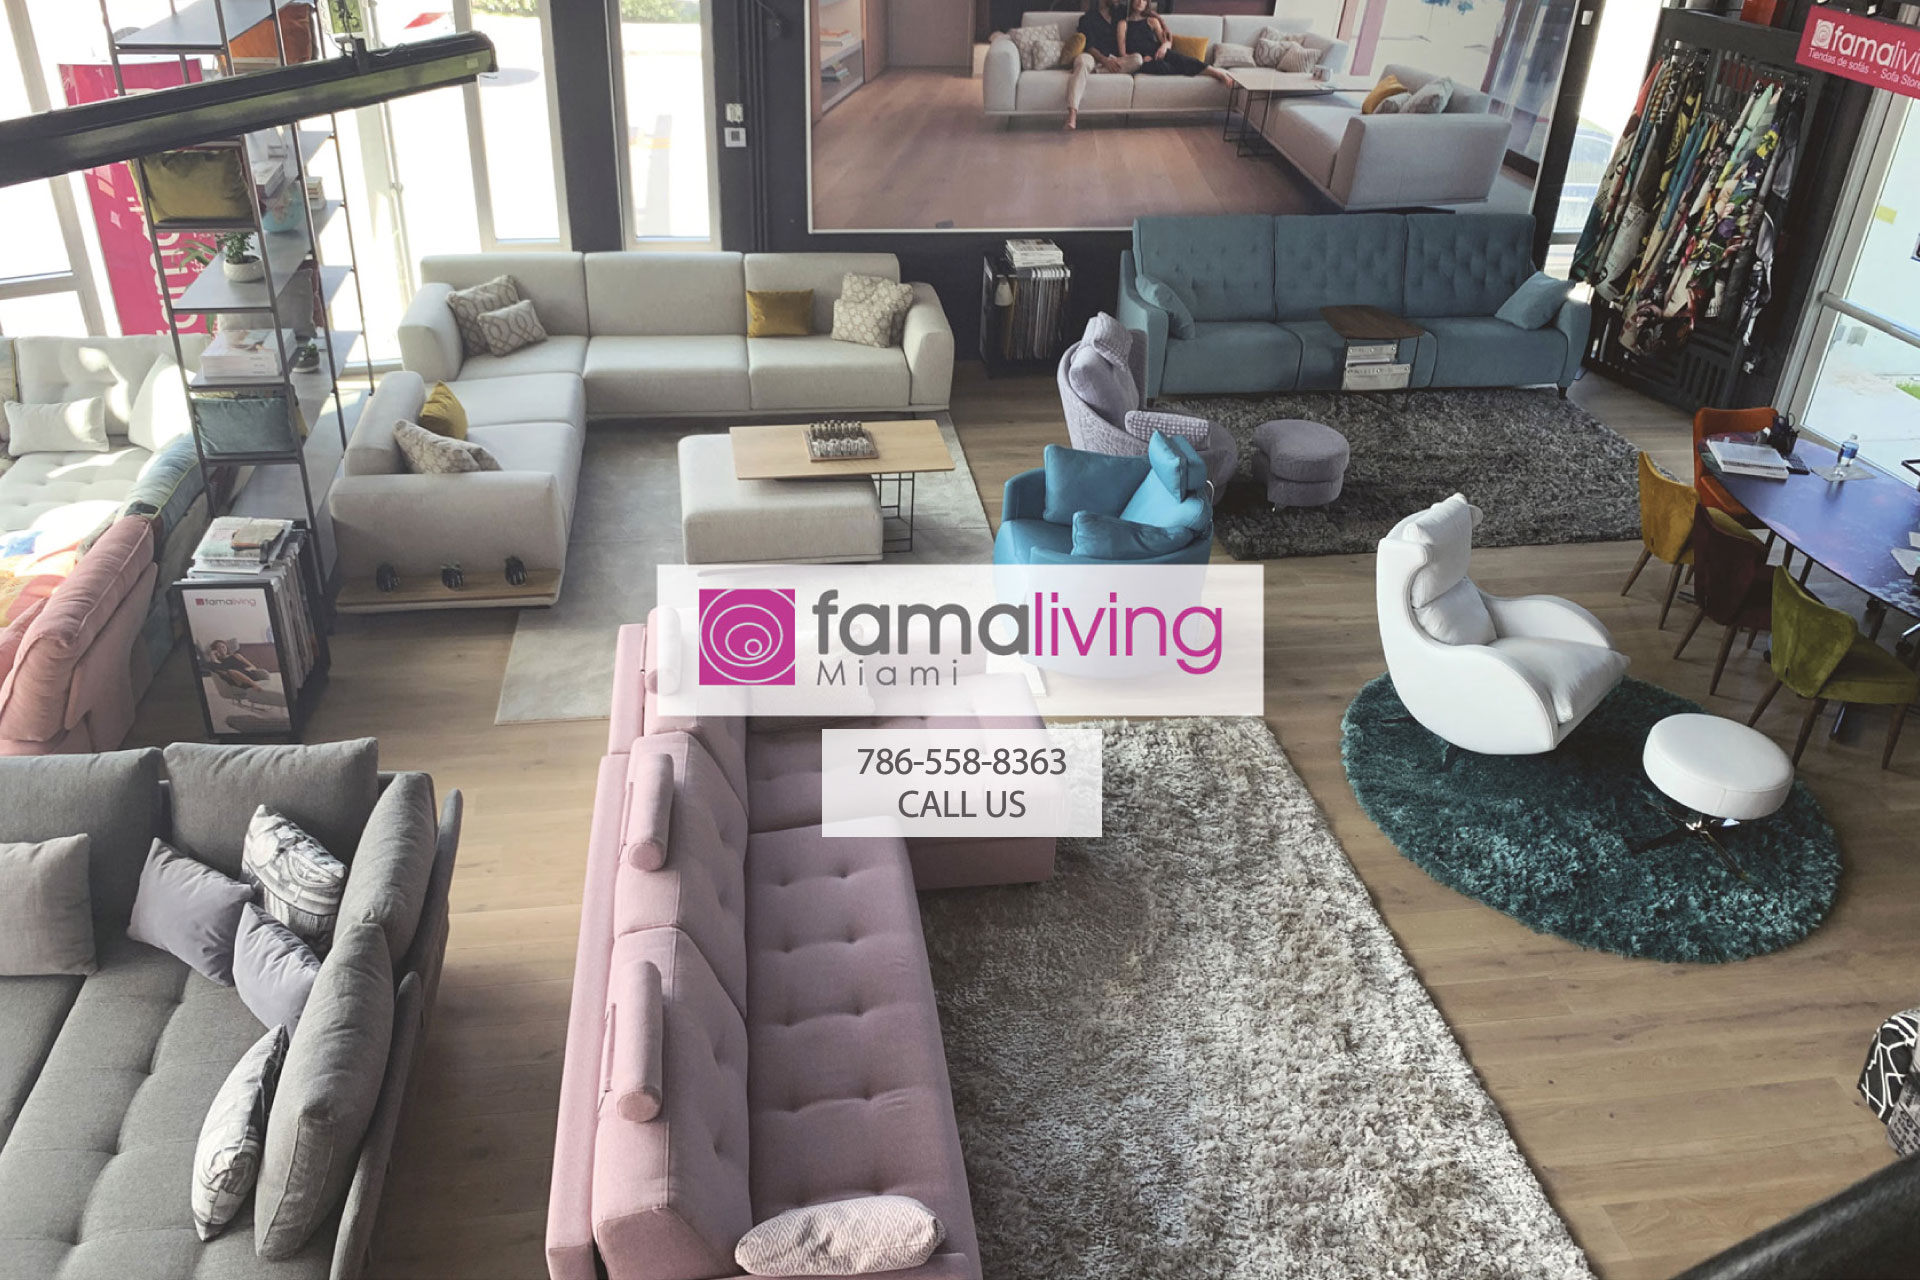 https://www.famaliving.com/miami